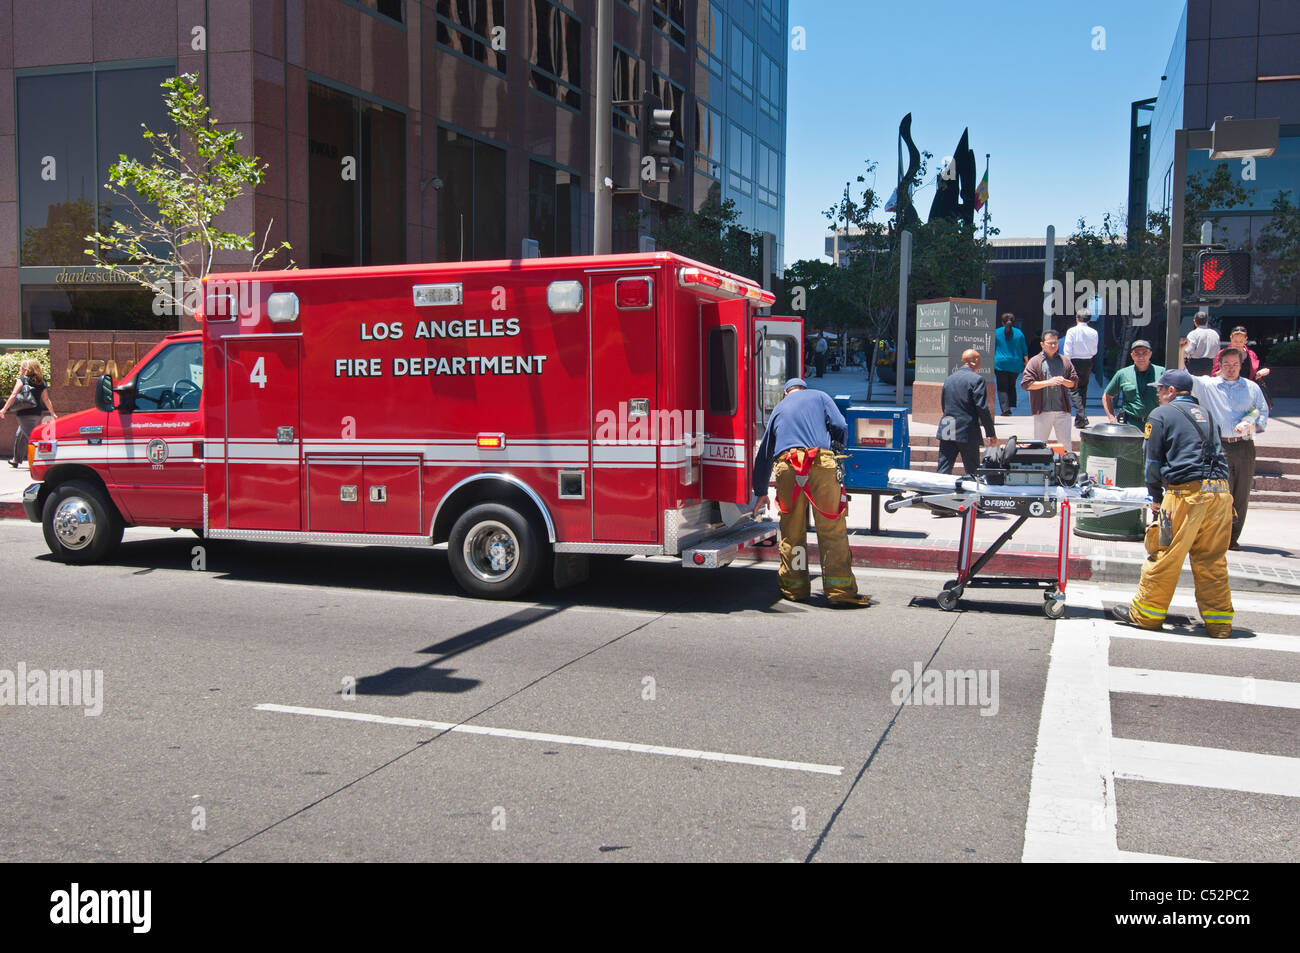 The Los angeles fire department images another pic of it HD ...